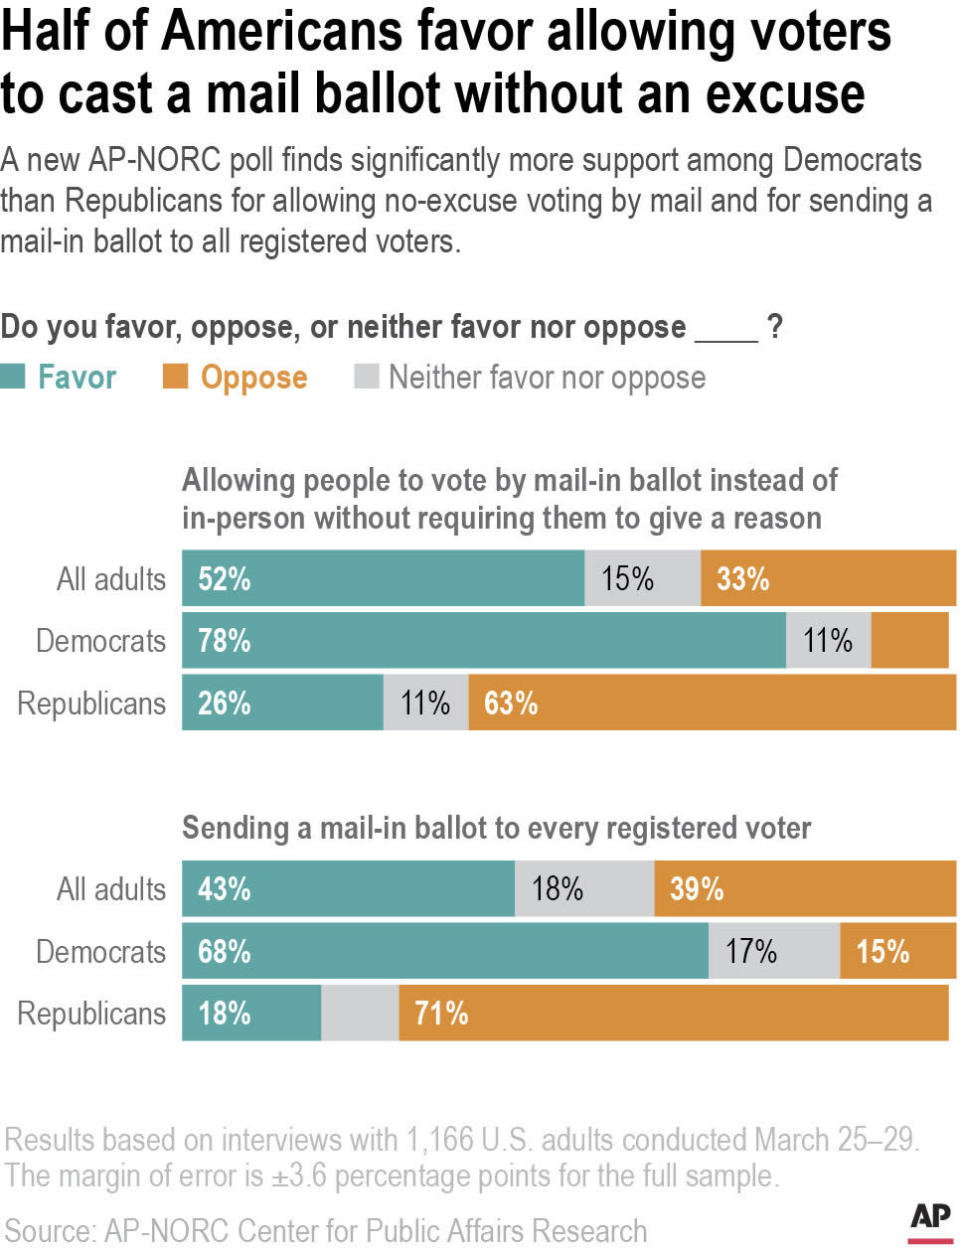 A new AP-NORC poll finds significantly more support among Democrats than Republicans for allowing no-excuse mail voting and for sending a mail-in ballot to all registered voters.